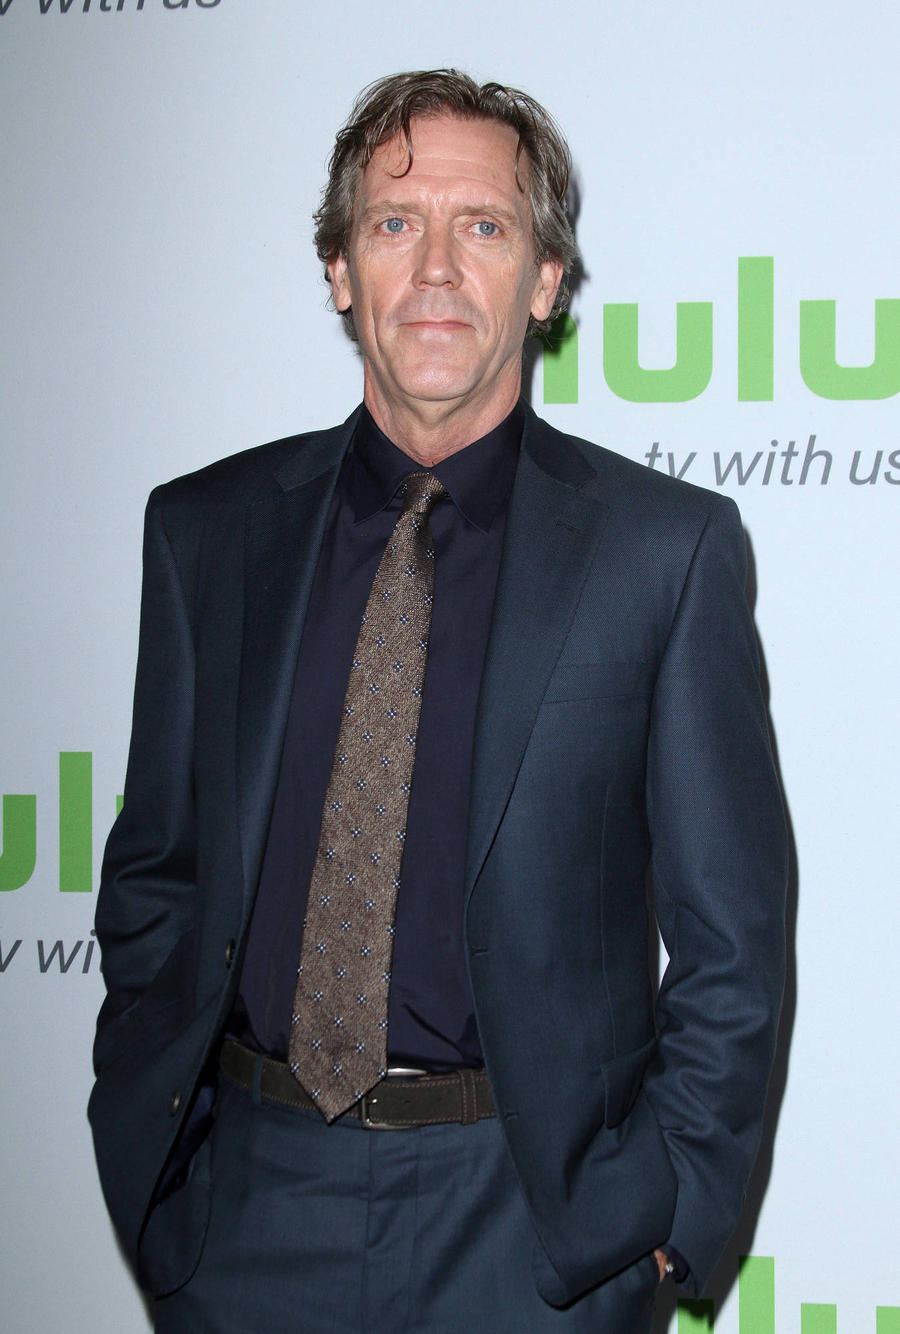 Stephen Fry To Salute Old Pal Hugh Laurie At Walk Of Fame Ceremony